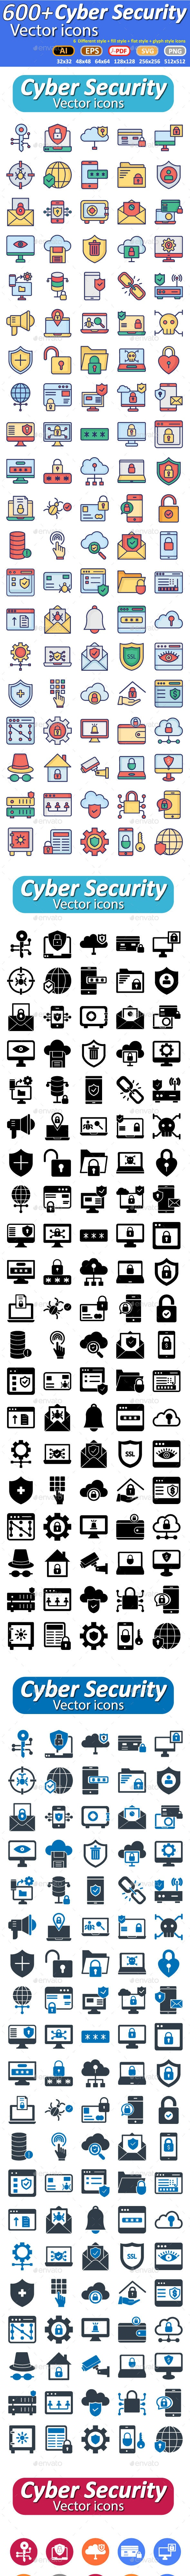 Cyber Security Icons - Icons